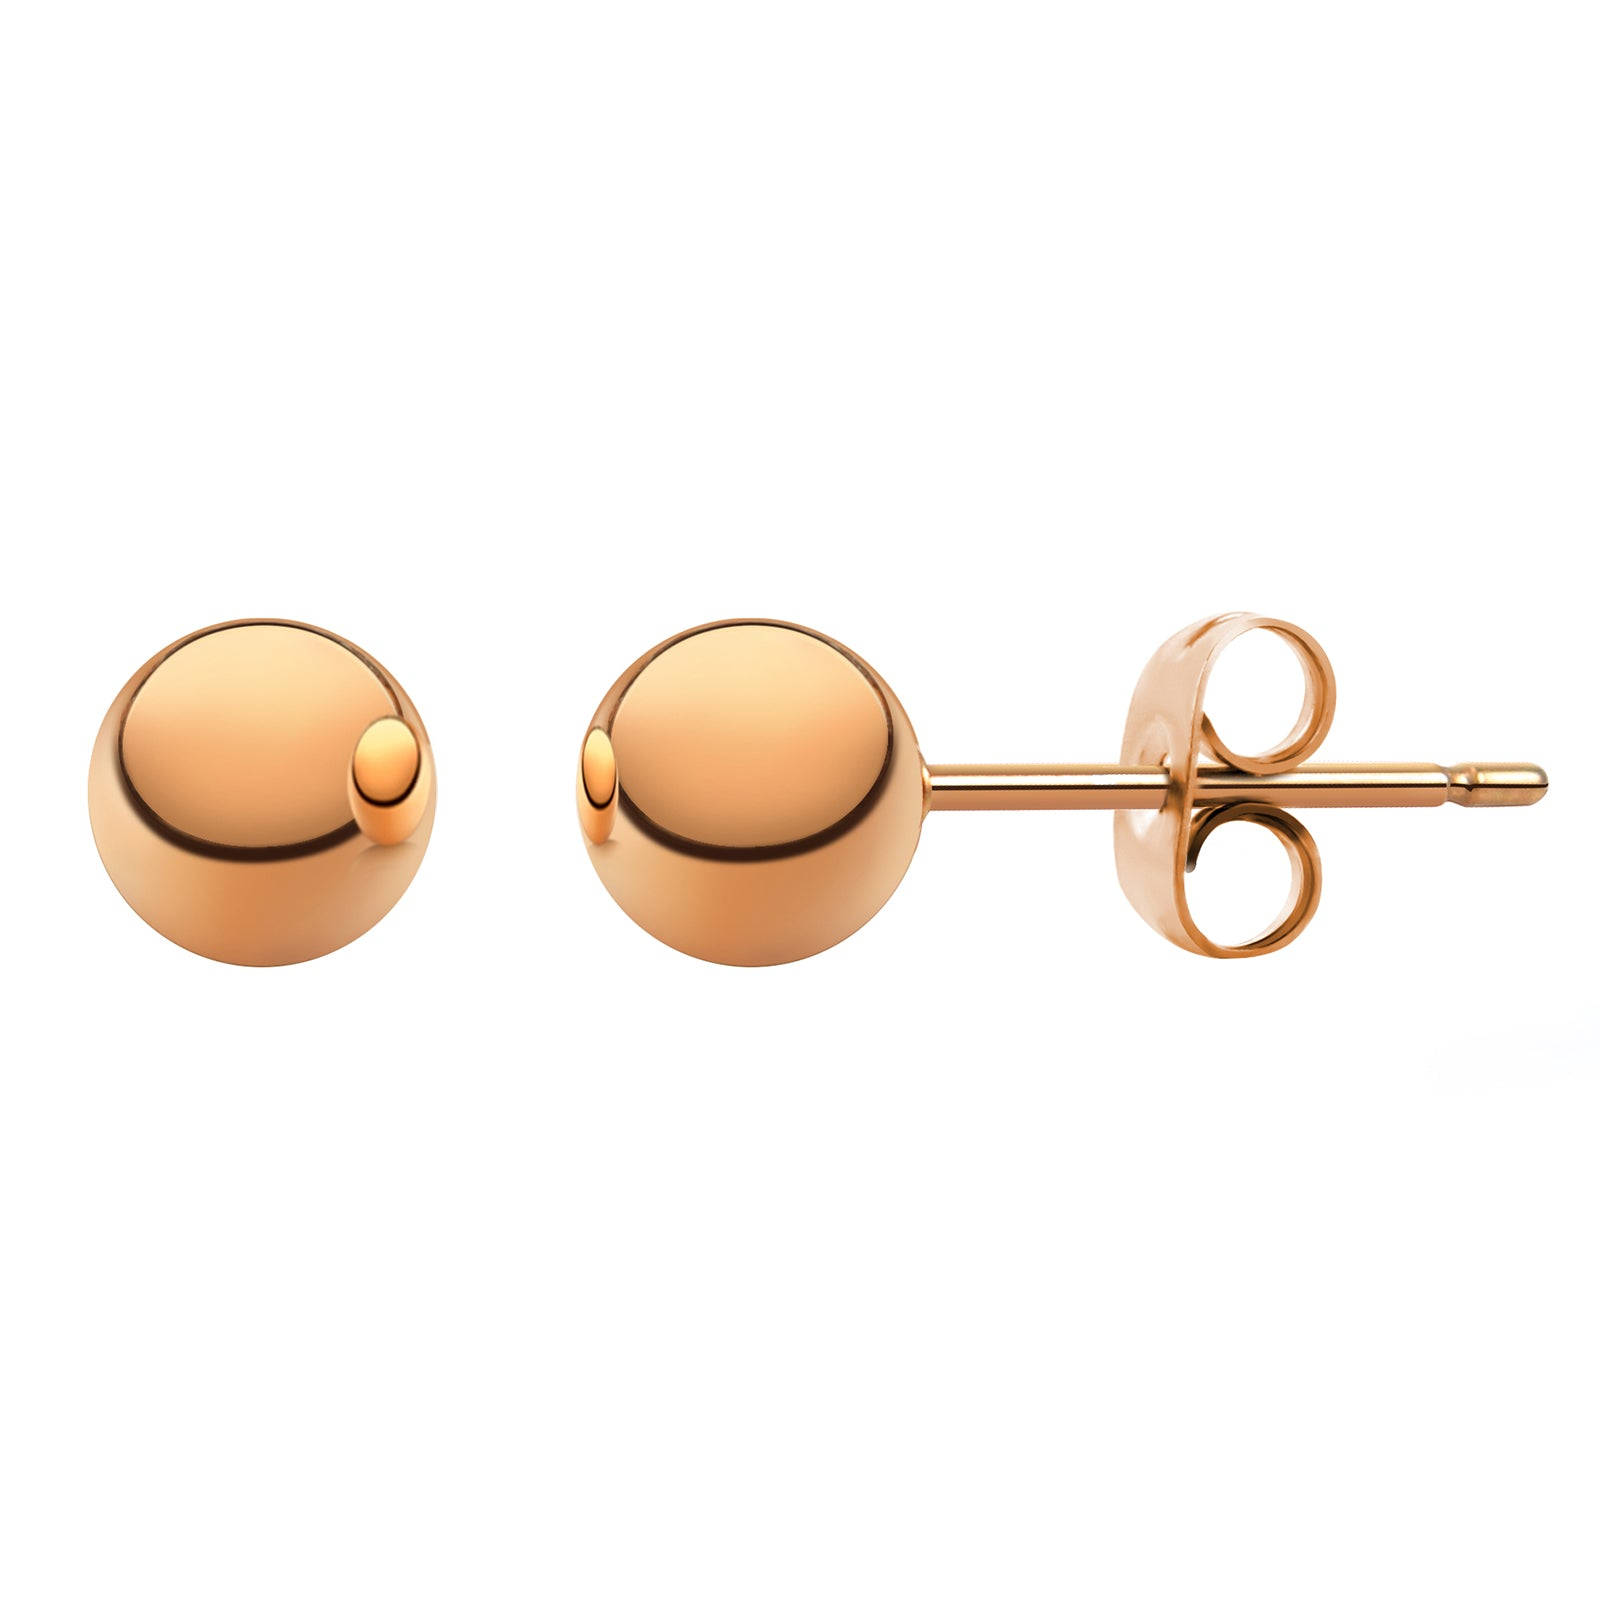 MNC-ER340-C-5mm Steel & Rose Gold Ball Stud Earrings